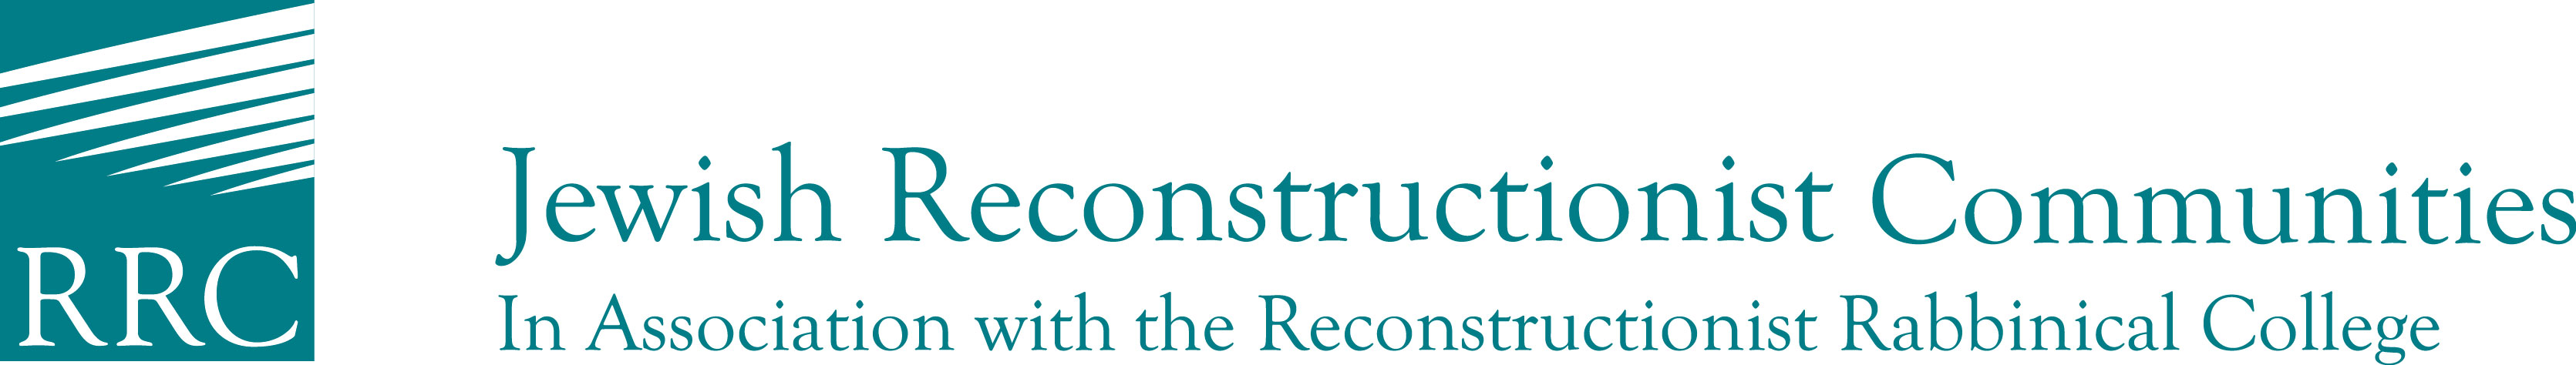 Jewish Reconstructionist Communities